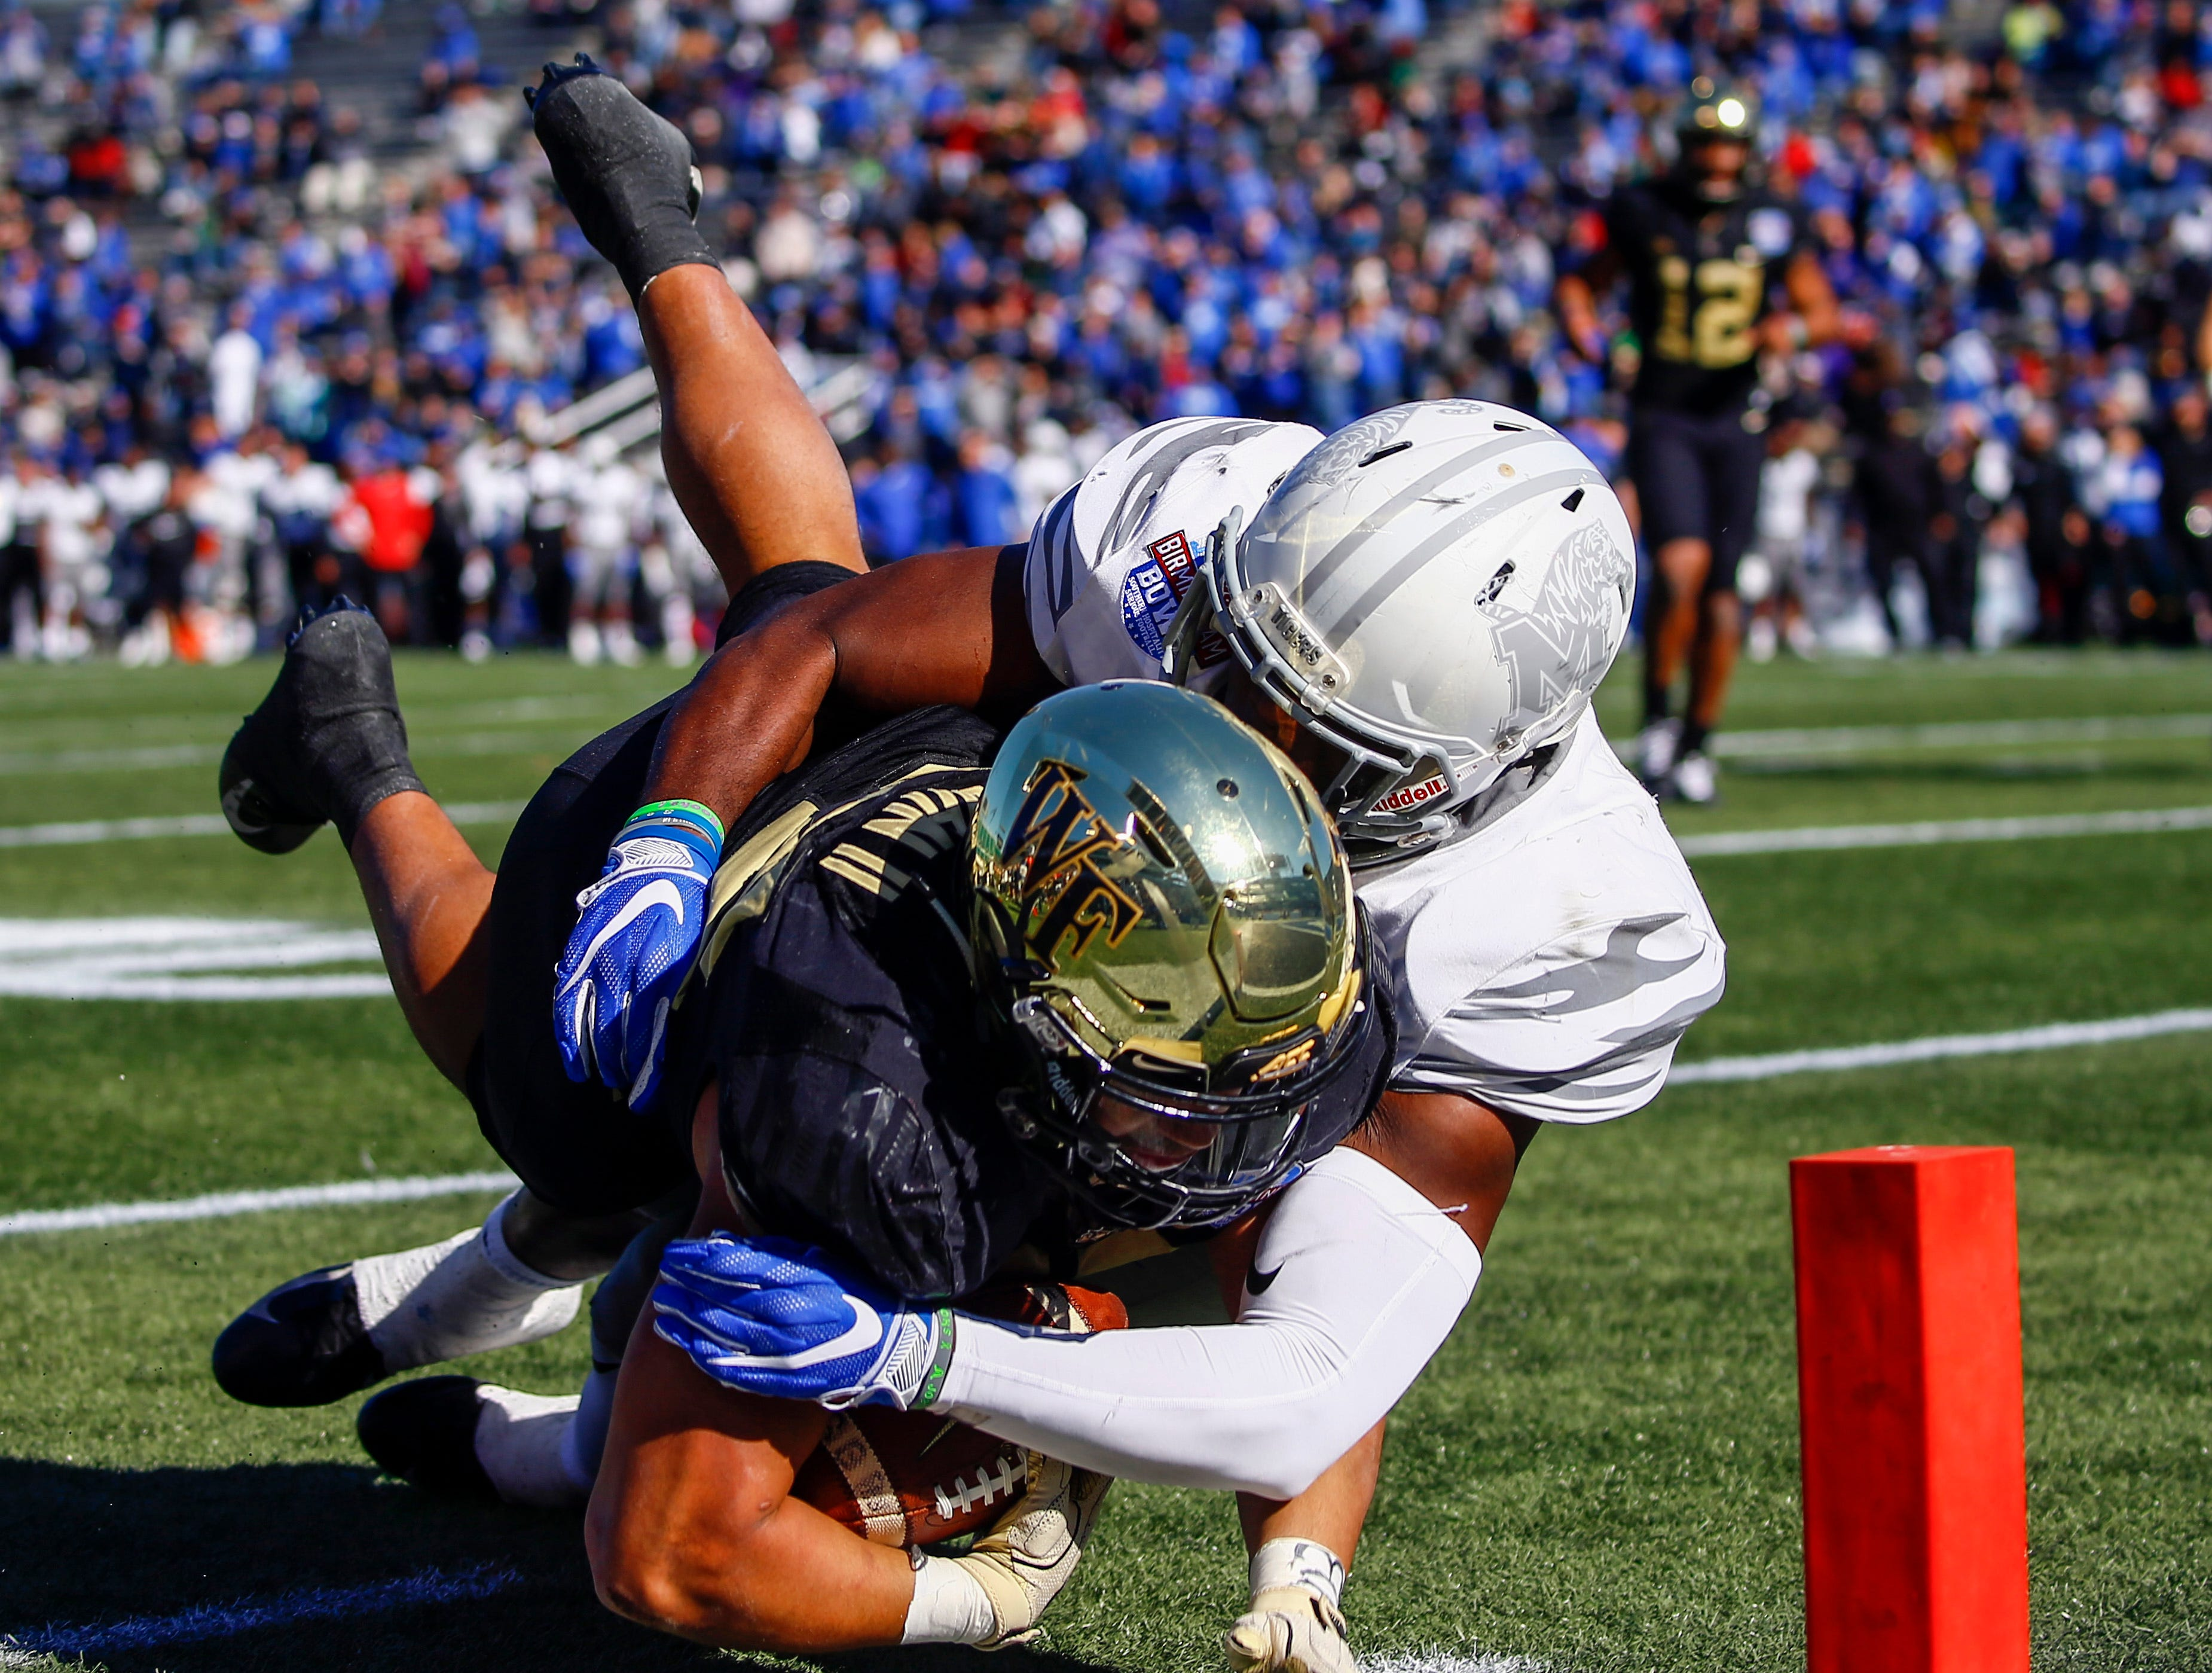 Wake Forest Demon Deacons running back Matt Colburn (22) is tackled just short of the goal line by Memphis Tigers linebacker Curtis Akins (7) during the first half of the Birmingham Bowl.